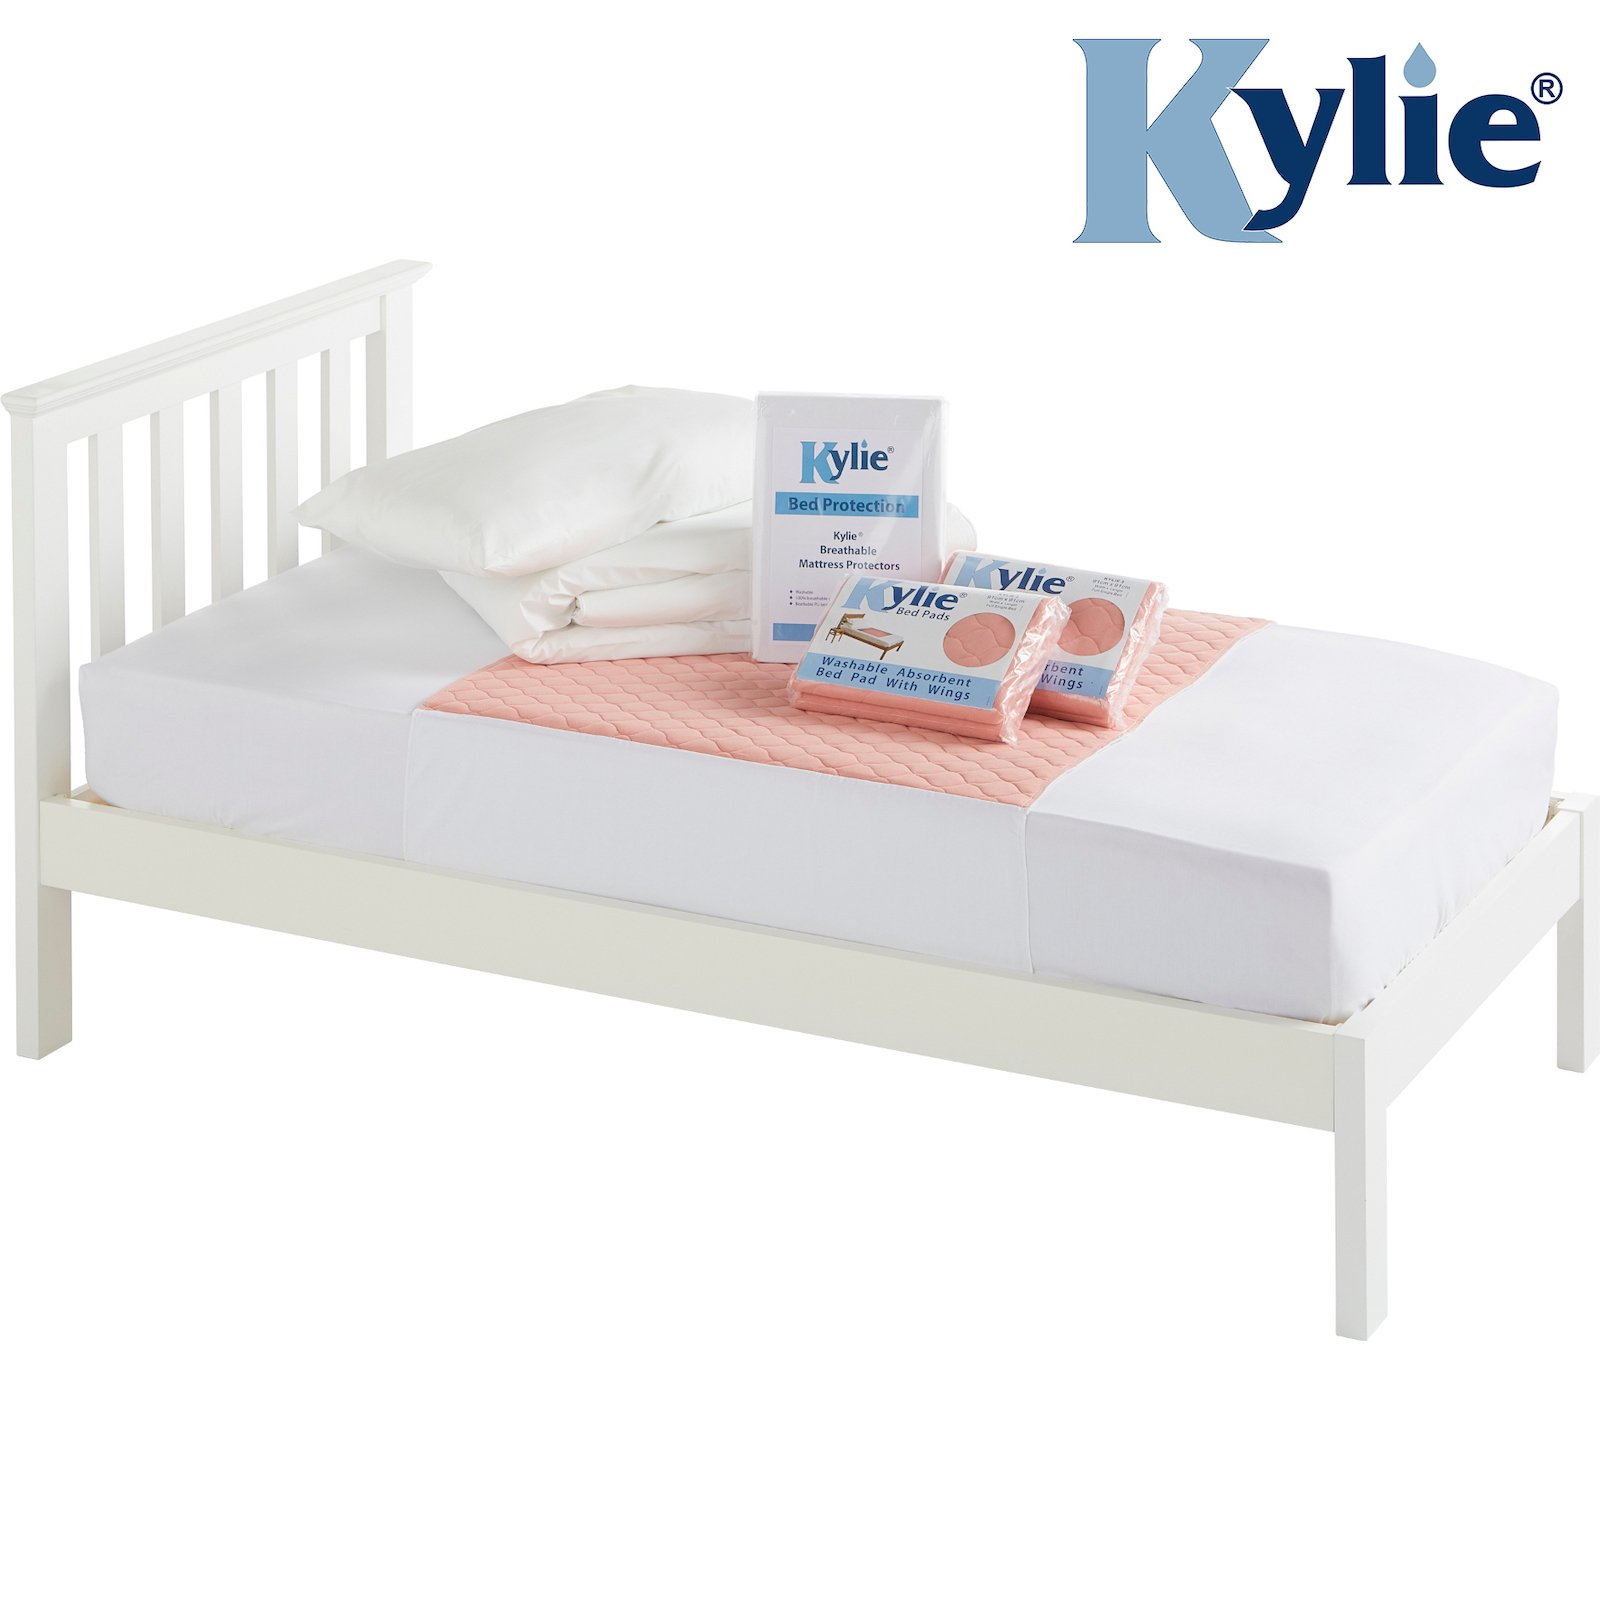 Single Bed Bundle